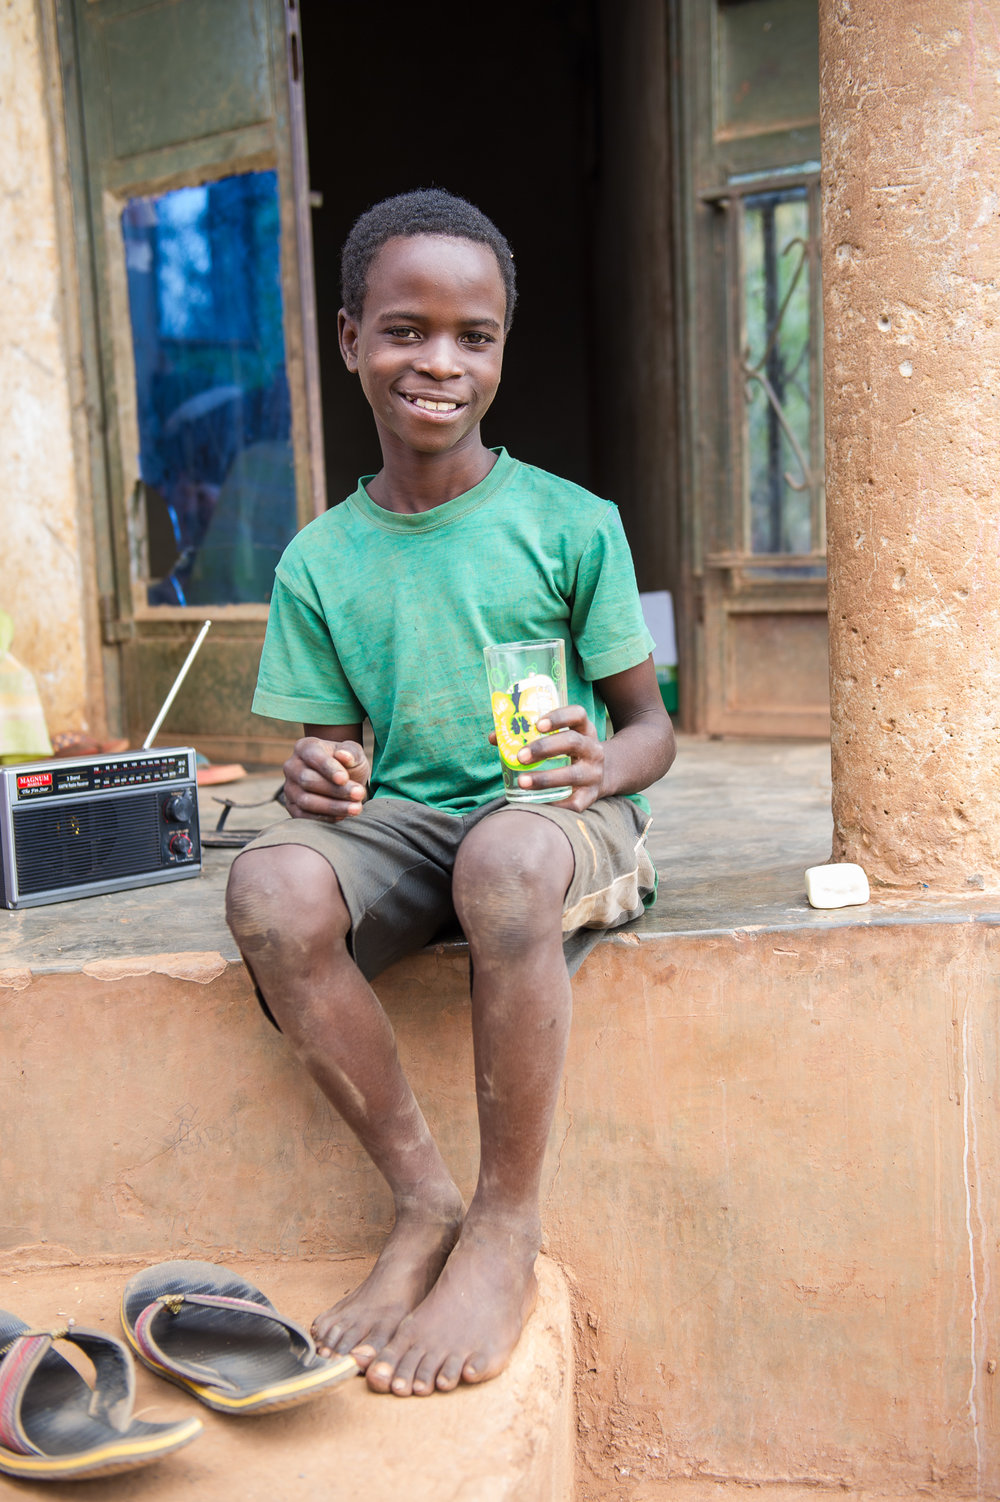 Brian used to miss school because he was sick with parasites from the water. Since the family got the purification system, no one has gotten sick.